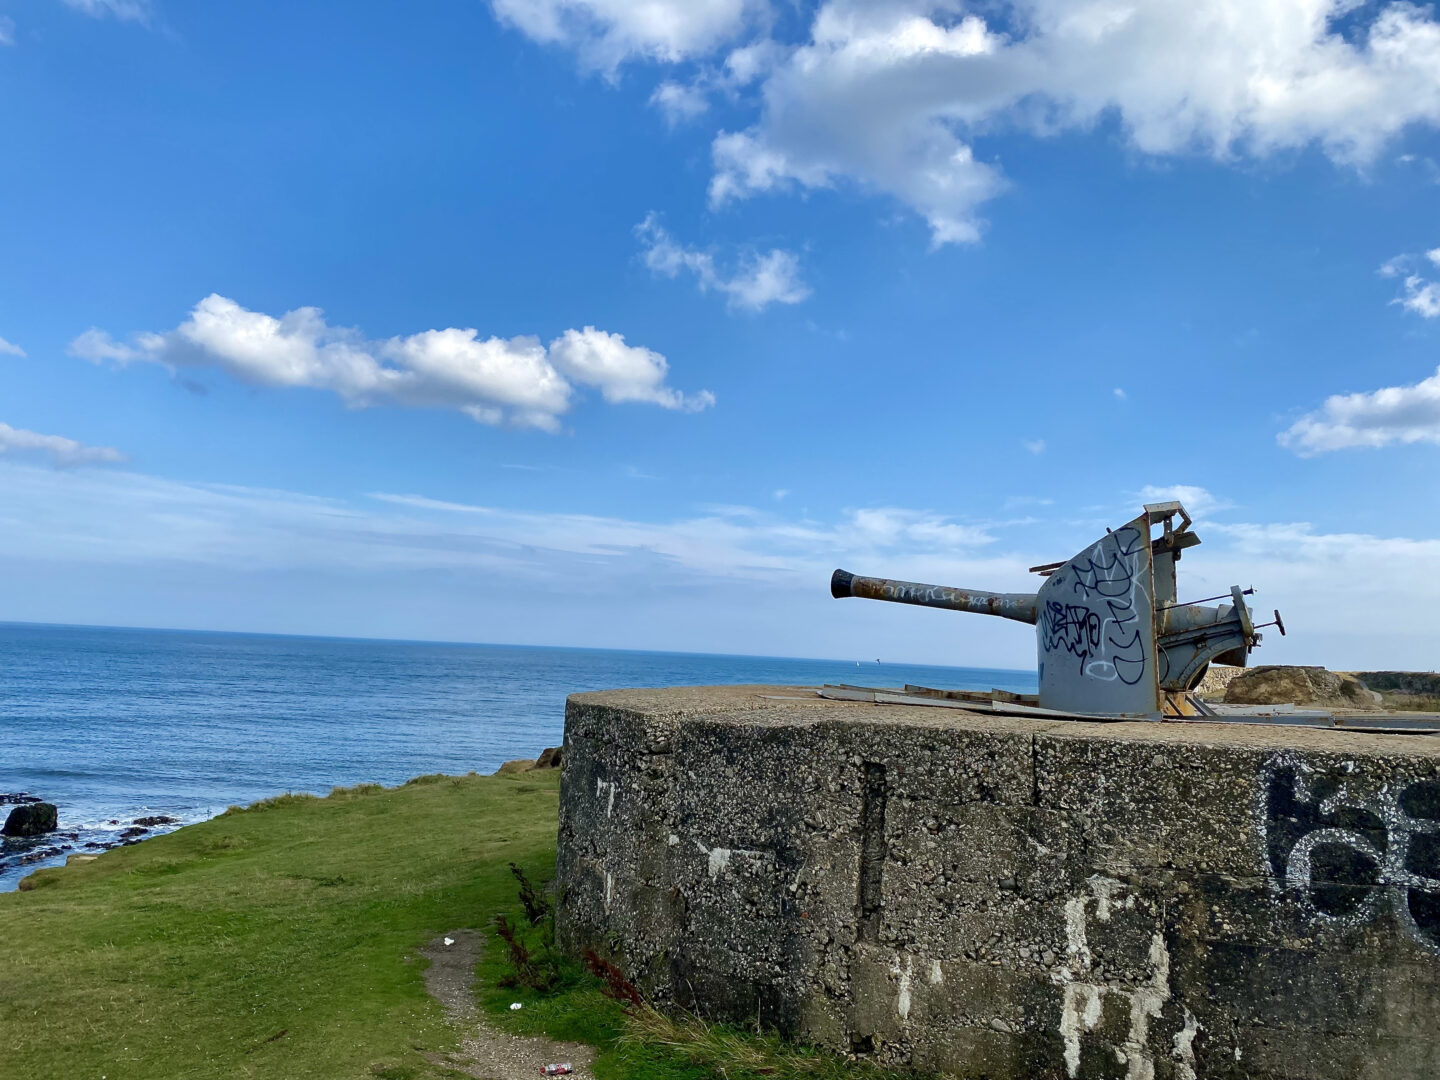 A large grade 2 listed military gun stands on a cliff top